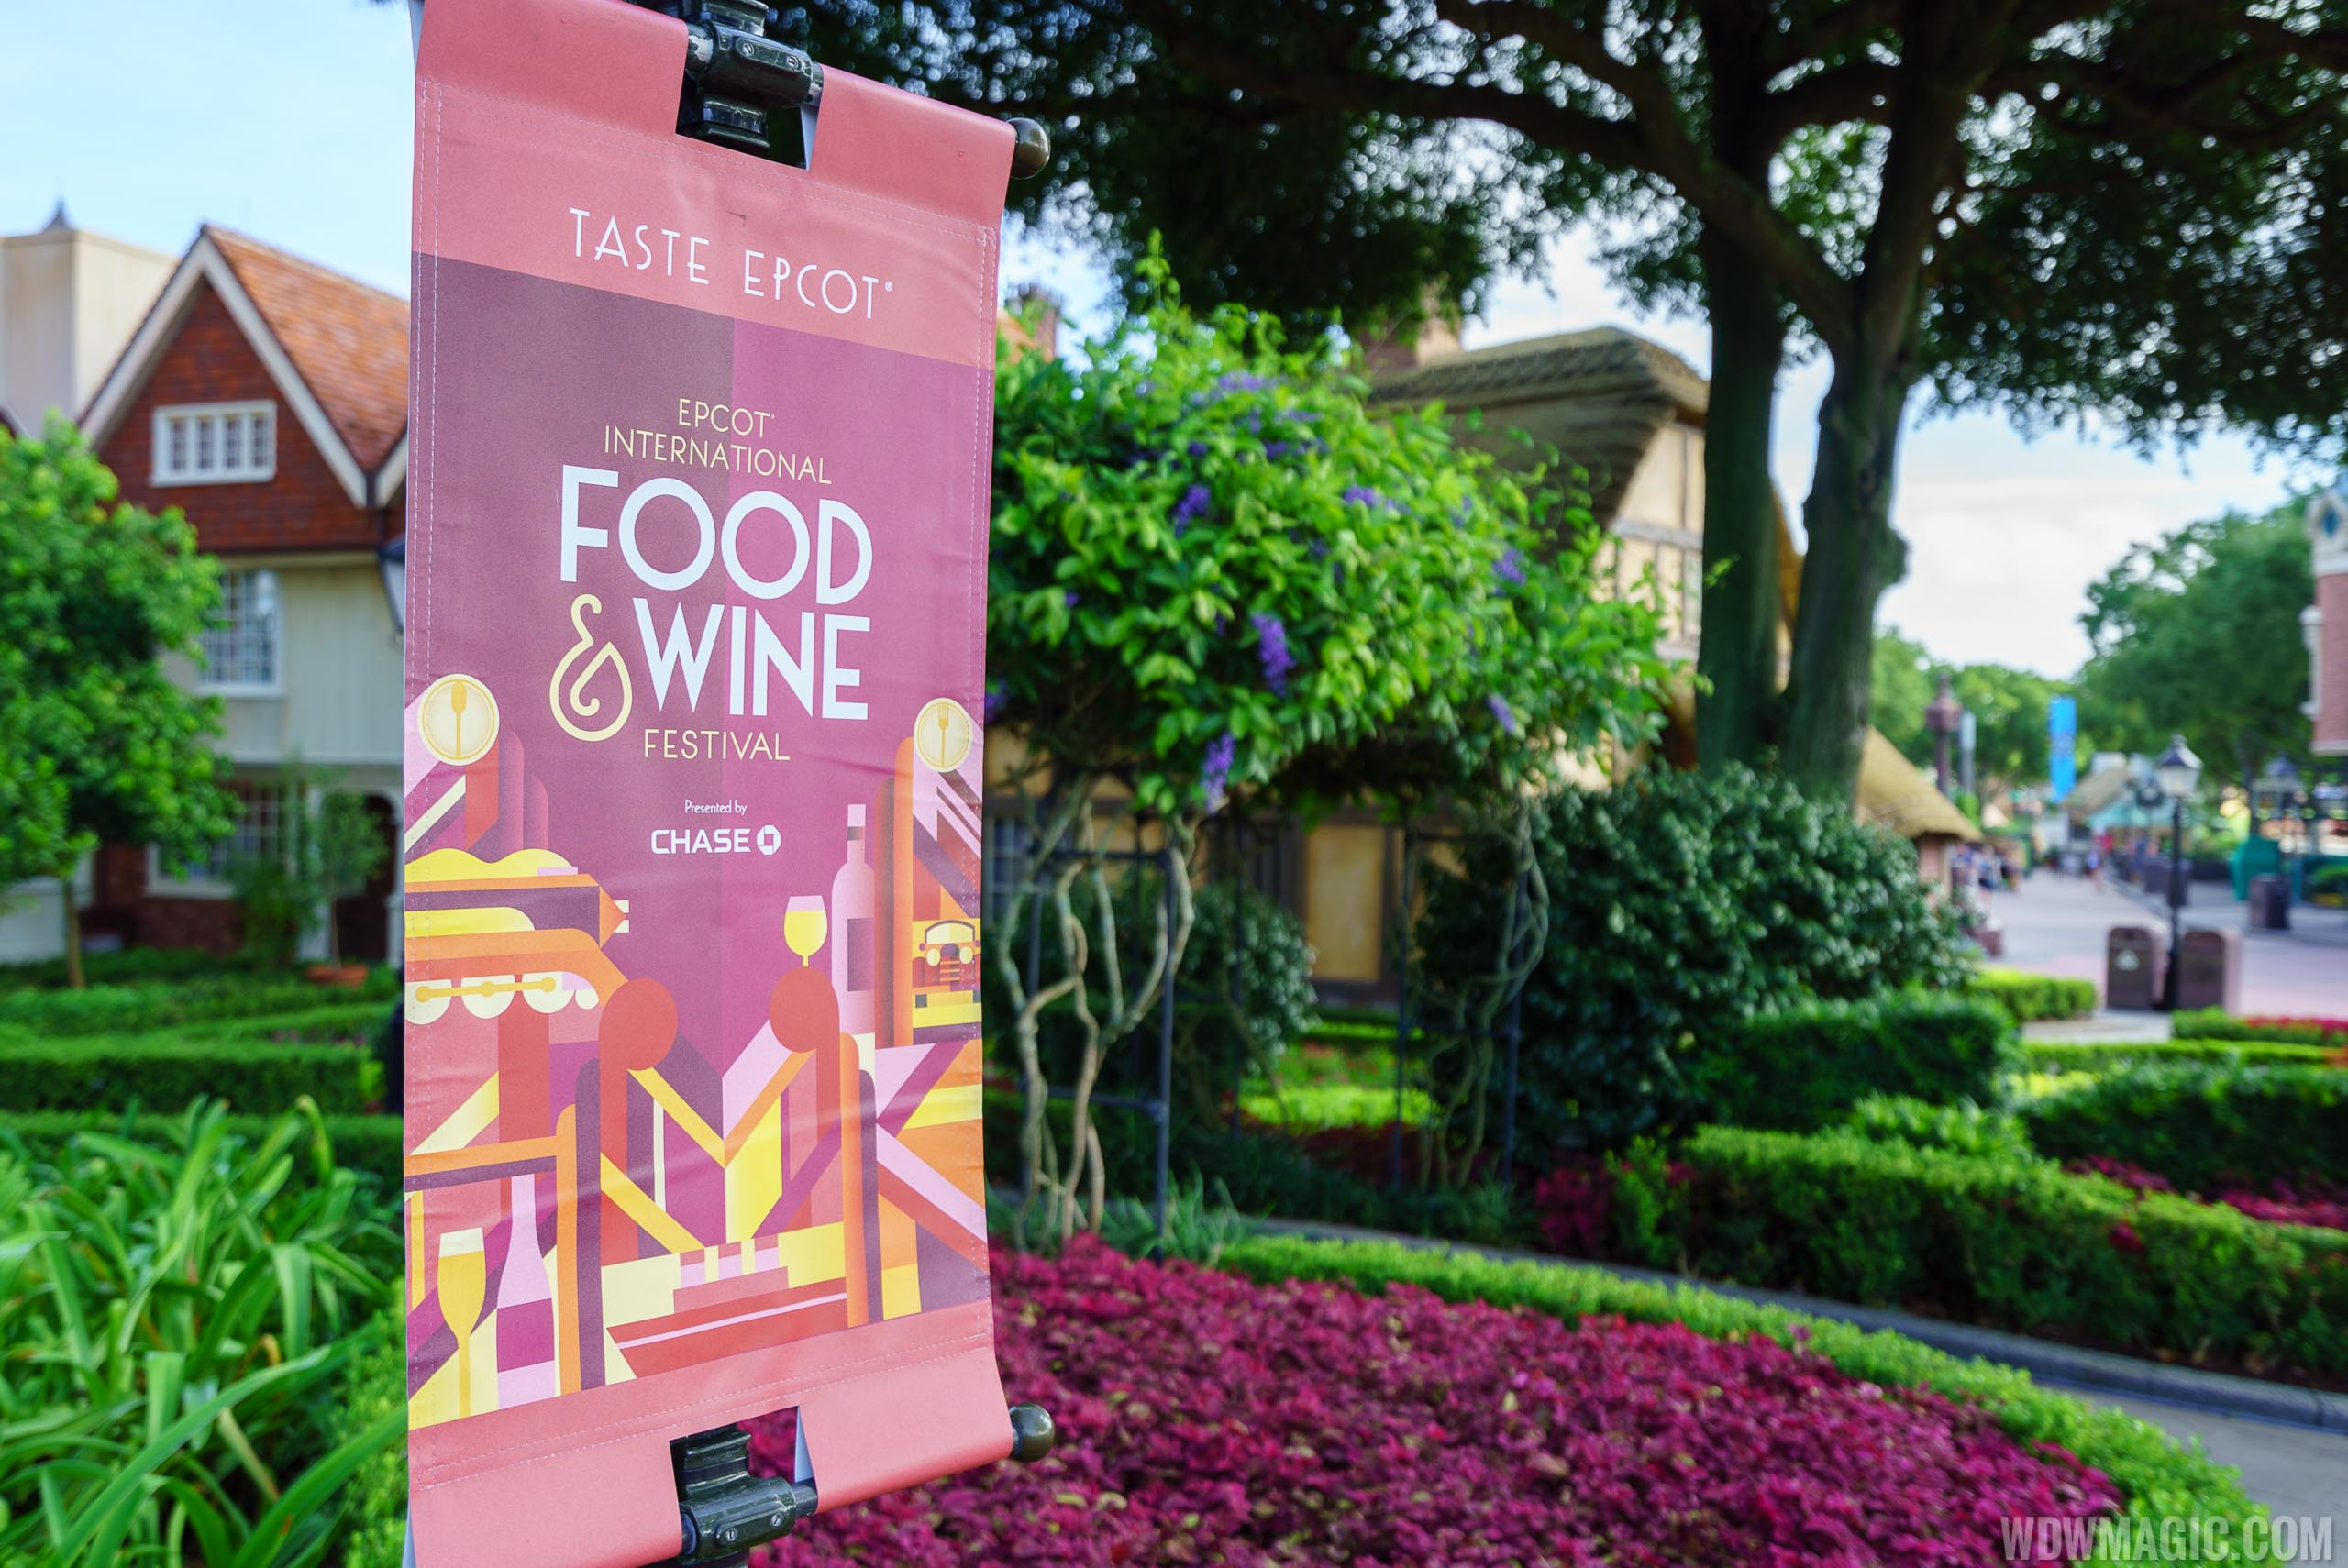 2016 Epcot Food and Wine Festival signage